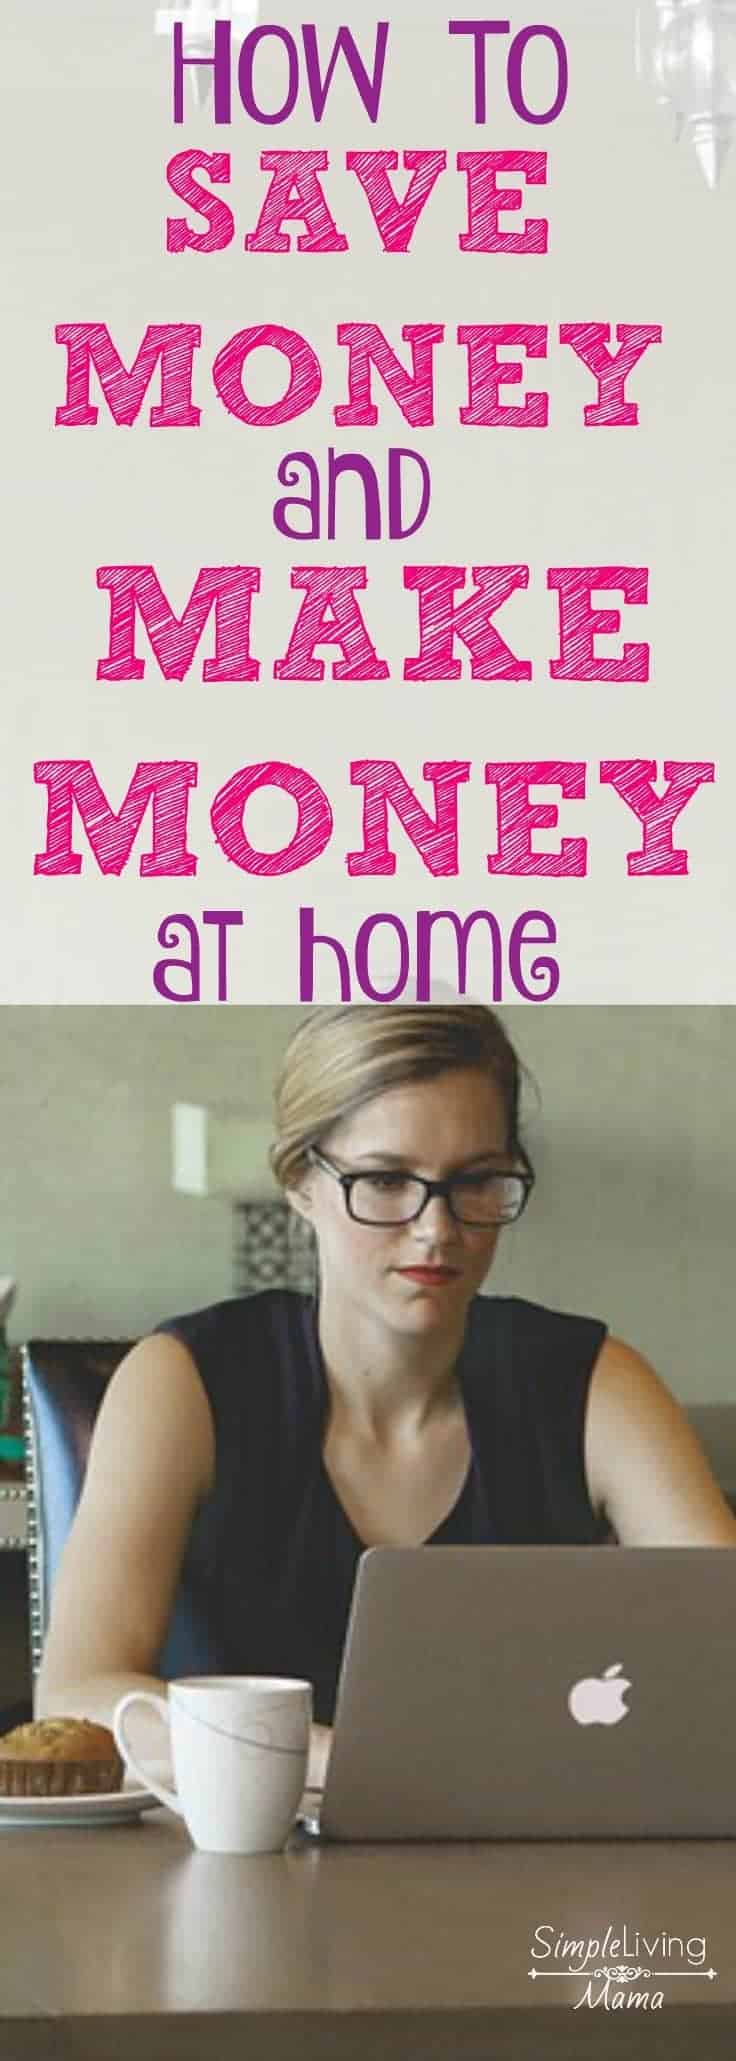 How To Save Money and Make Money at Home